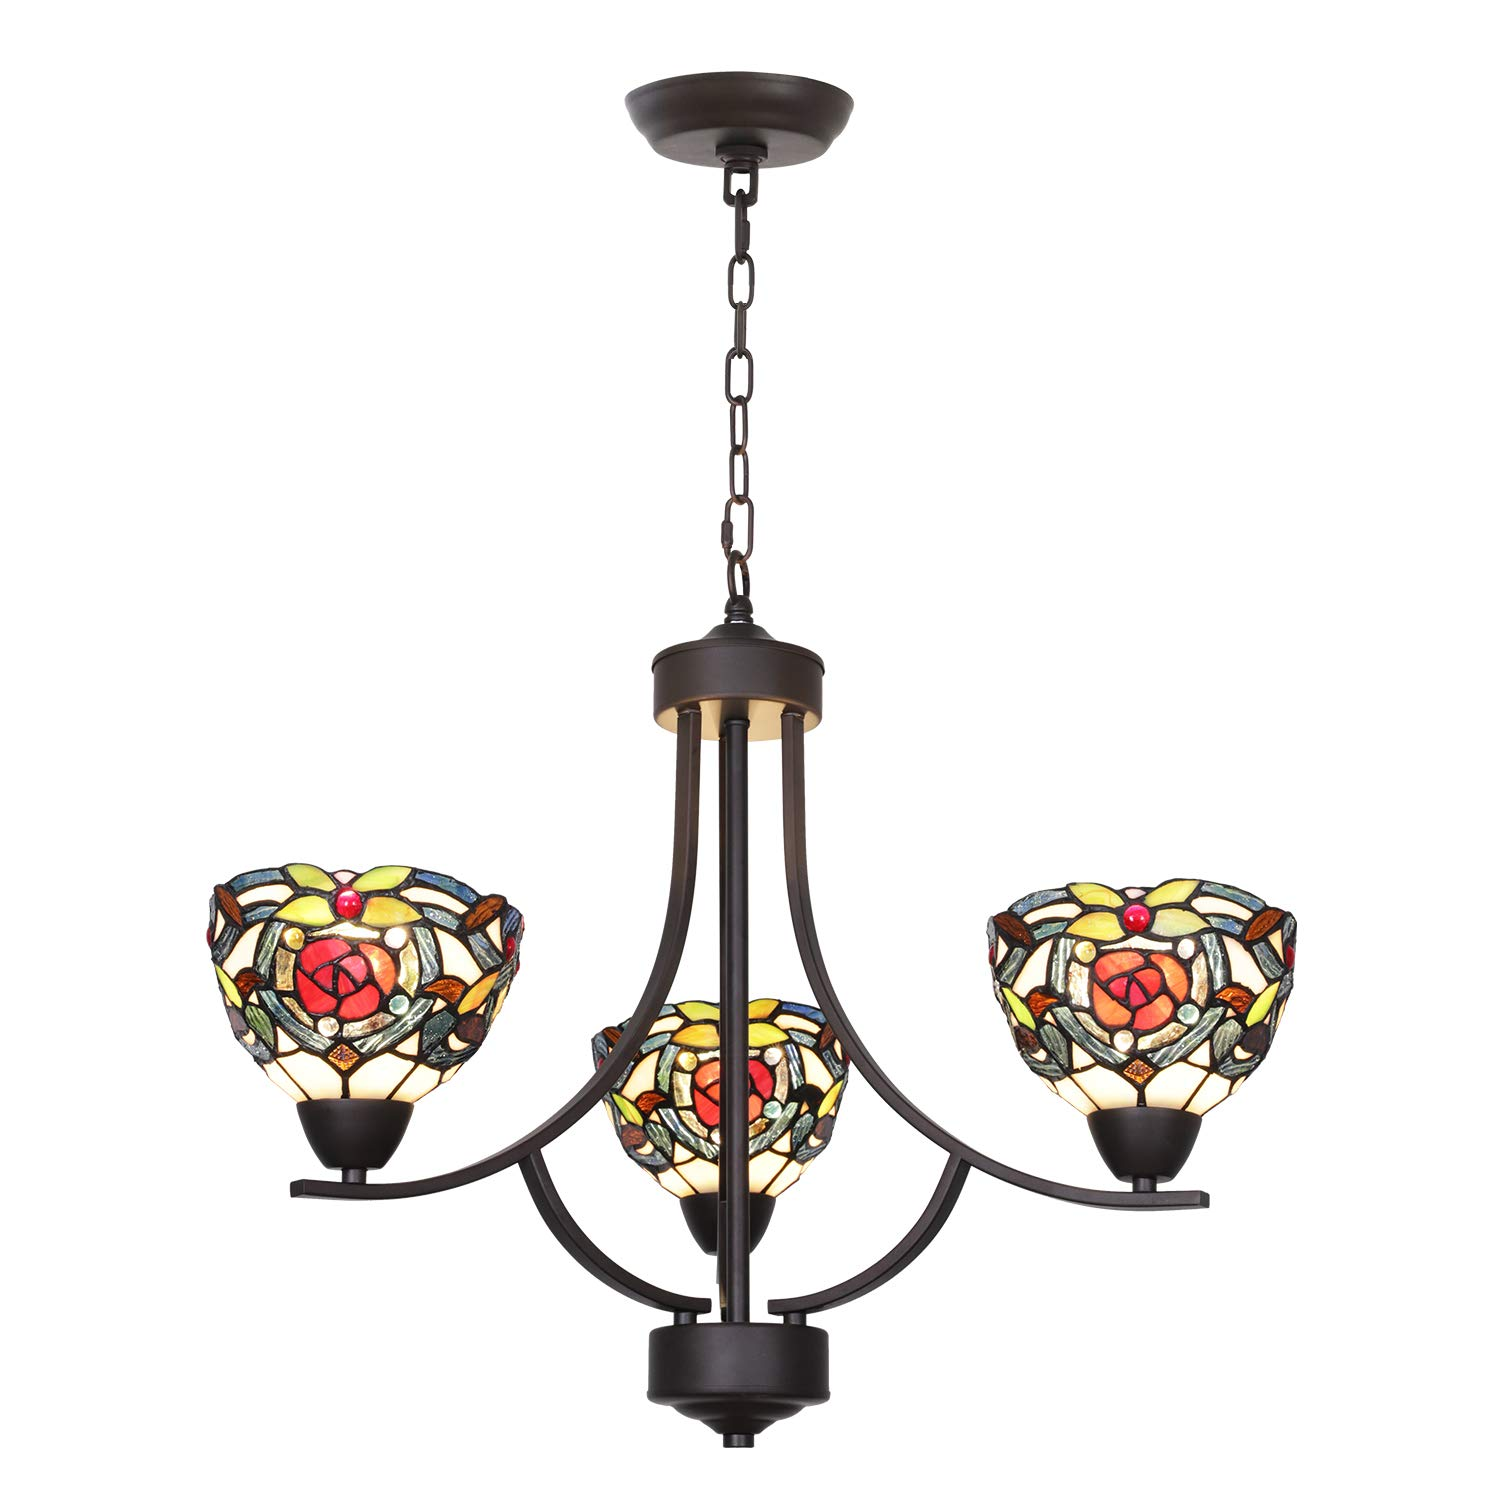 VINLUZ 3 Light Tiffany Contemporary Chandeliers with Stained Glass Shade Oil Rubbed Bronze Rustic Light Fixtures Ceiling Hanging Mid Century Pendant Lighting for Dining Room Bedroom Kitchen